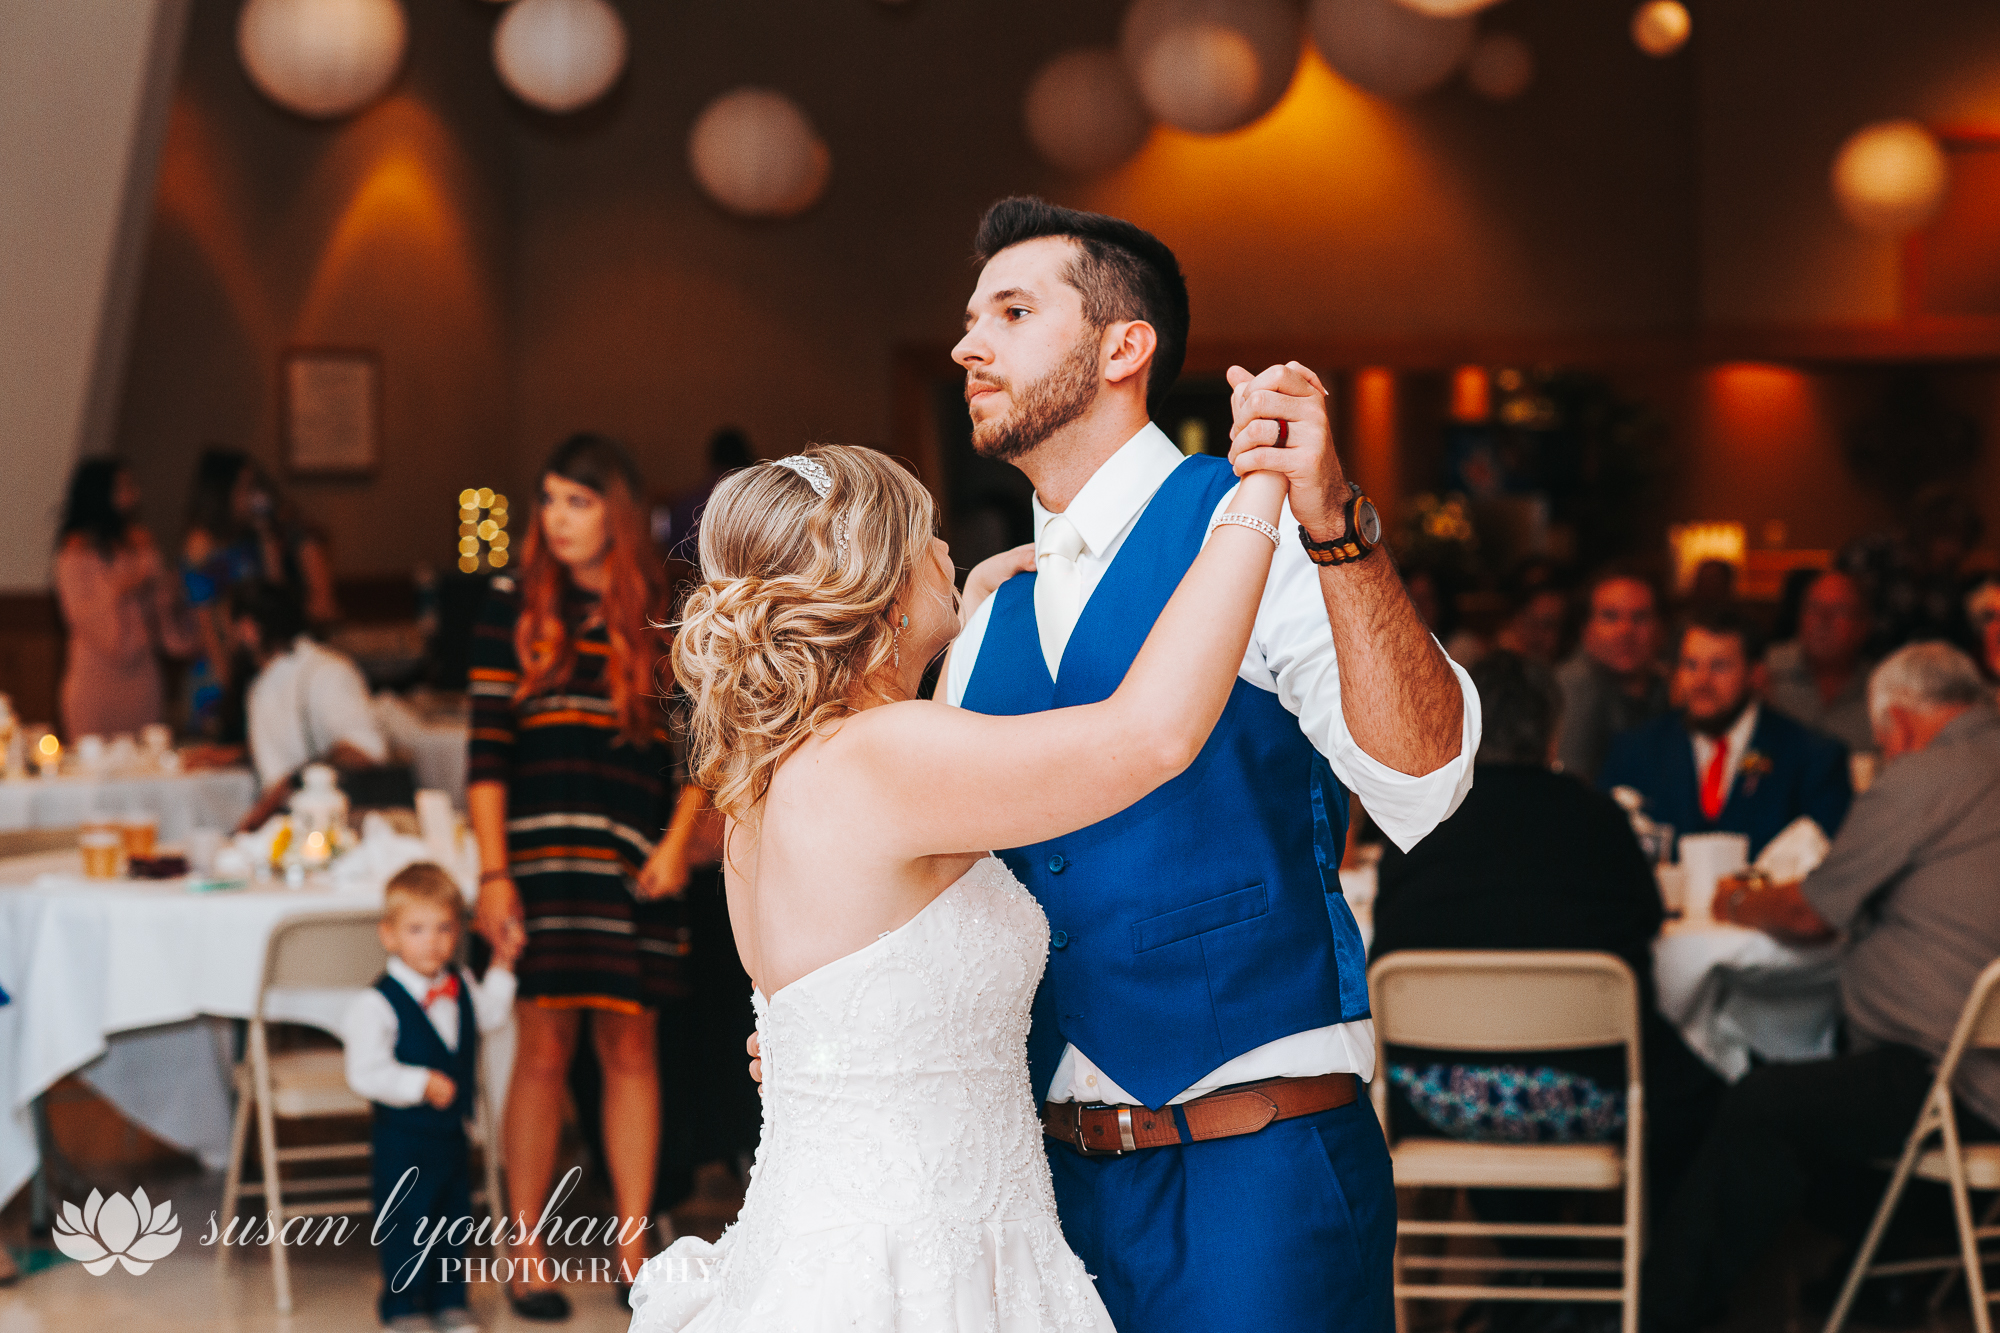 BLOG Kylie and corey Bennet 10-13-2018 SLY Photography LLC-174.jpg